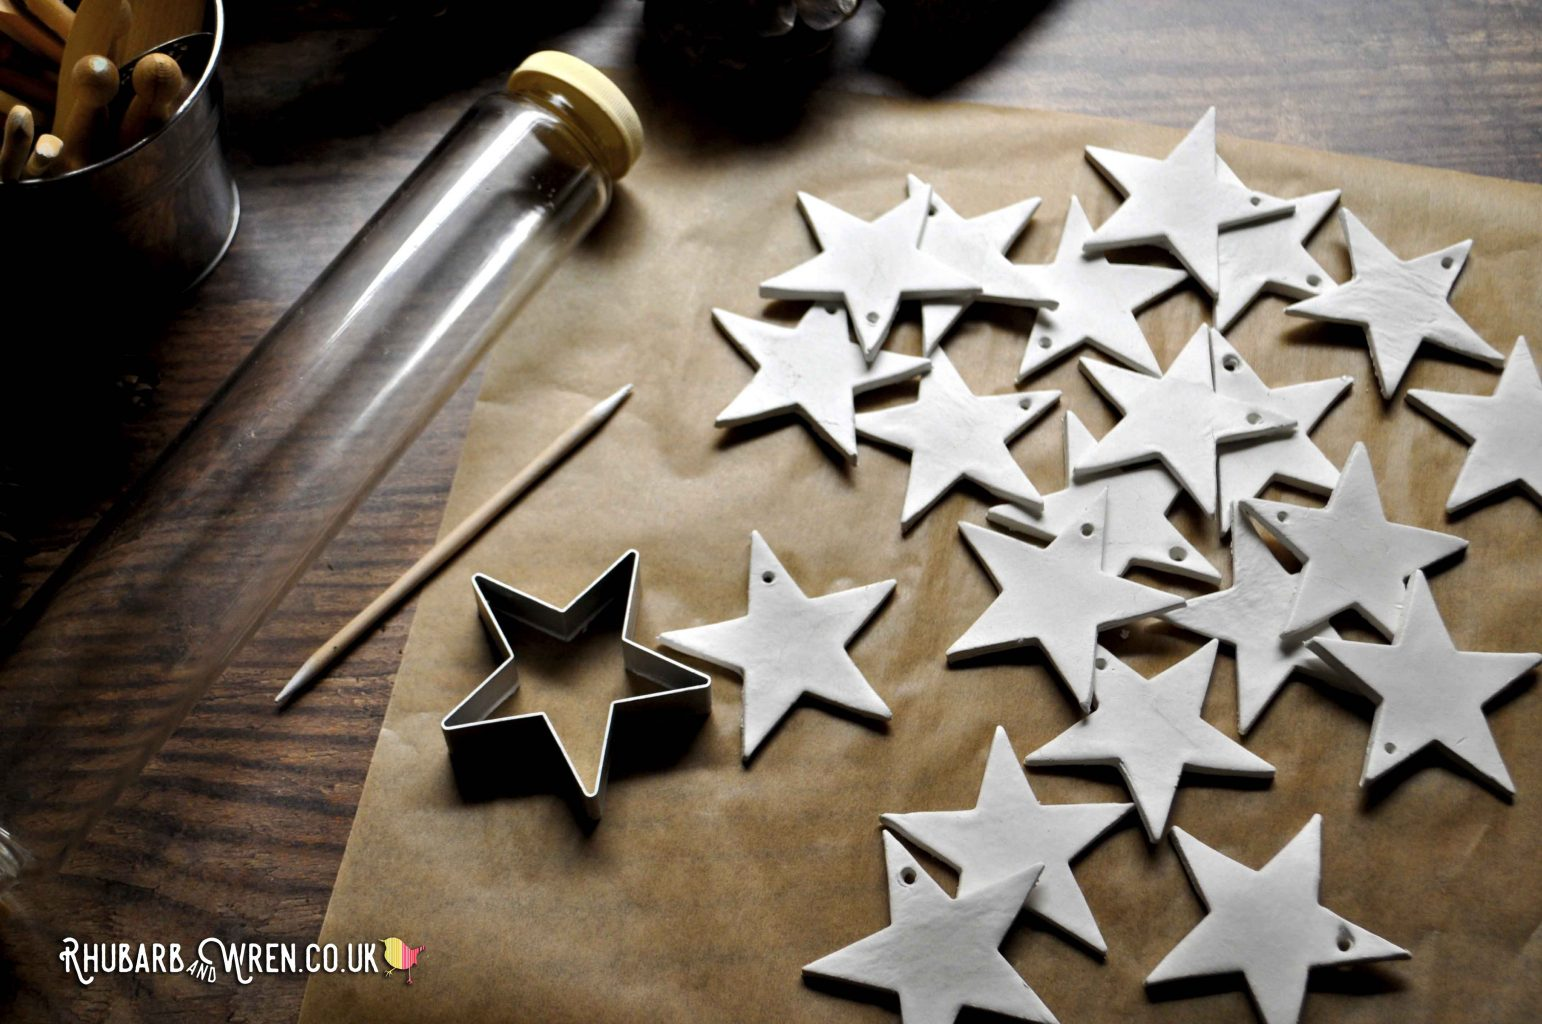 Glass rolling pin and star cutter for making clay star ornaments.